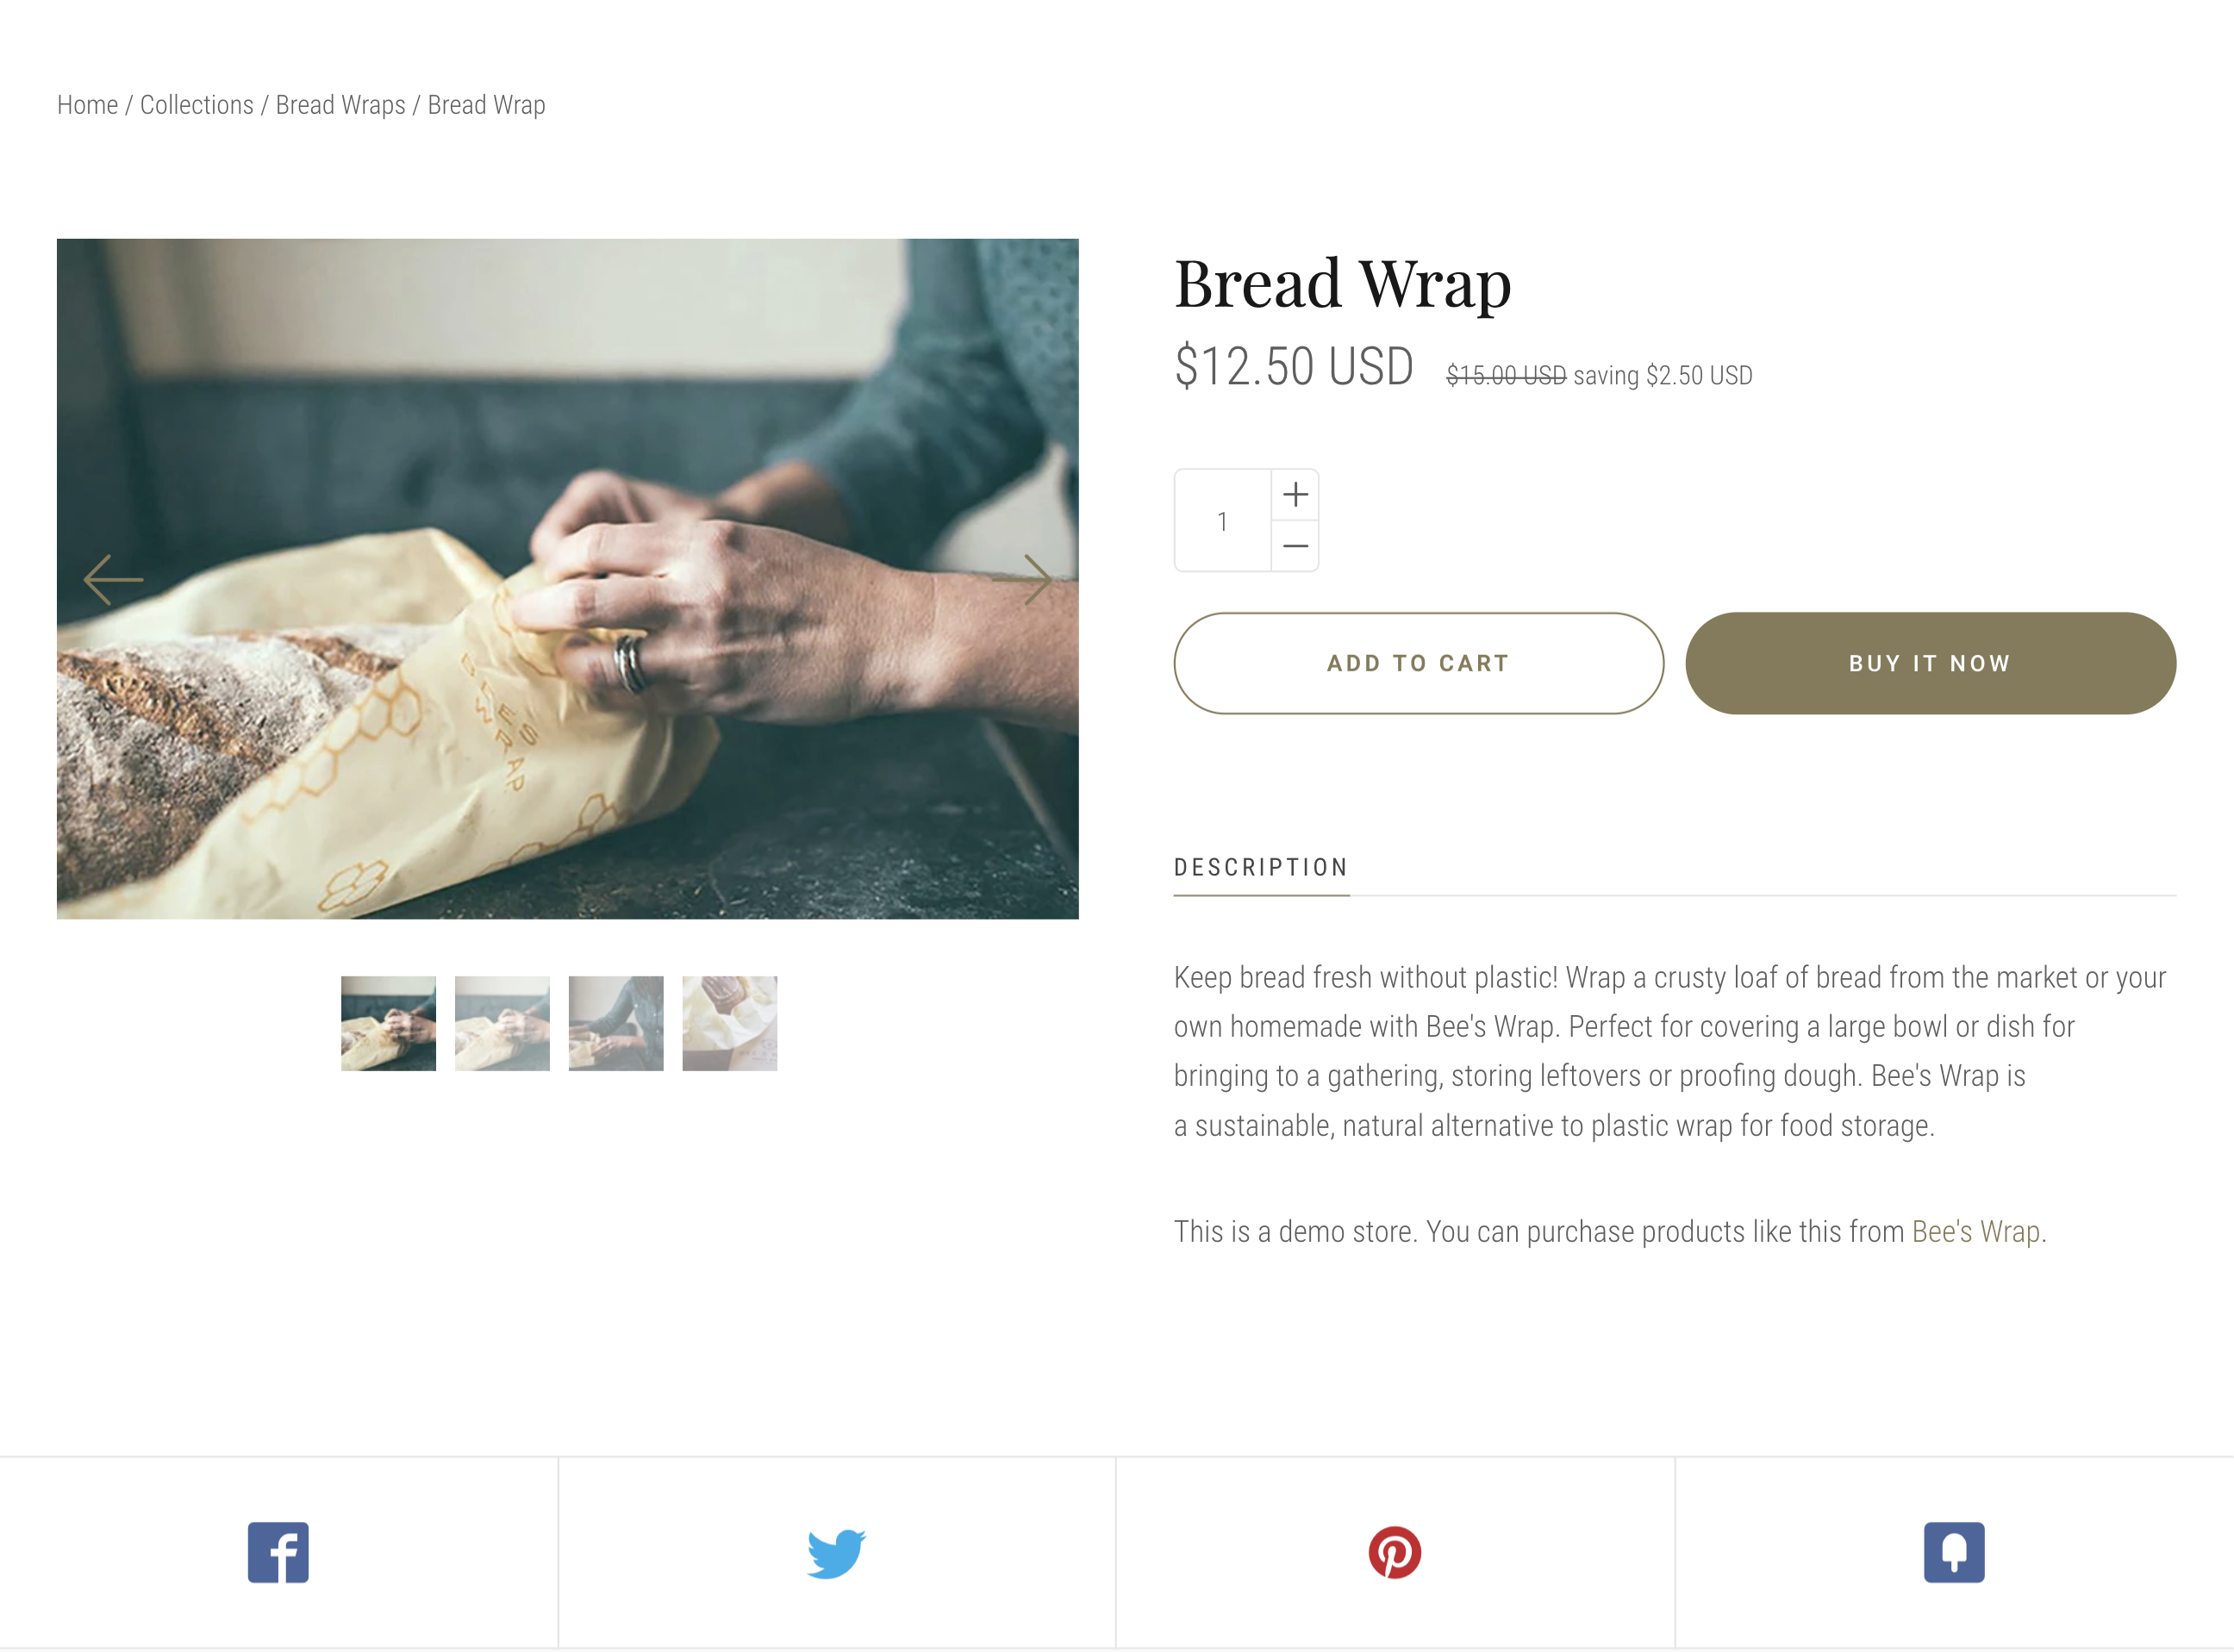 Launch_product_page_with_bread_wrap_product.png